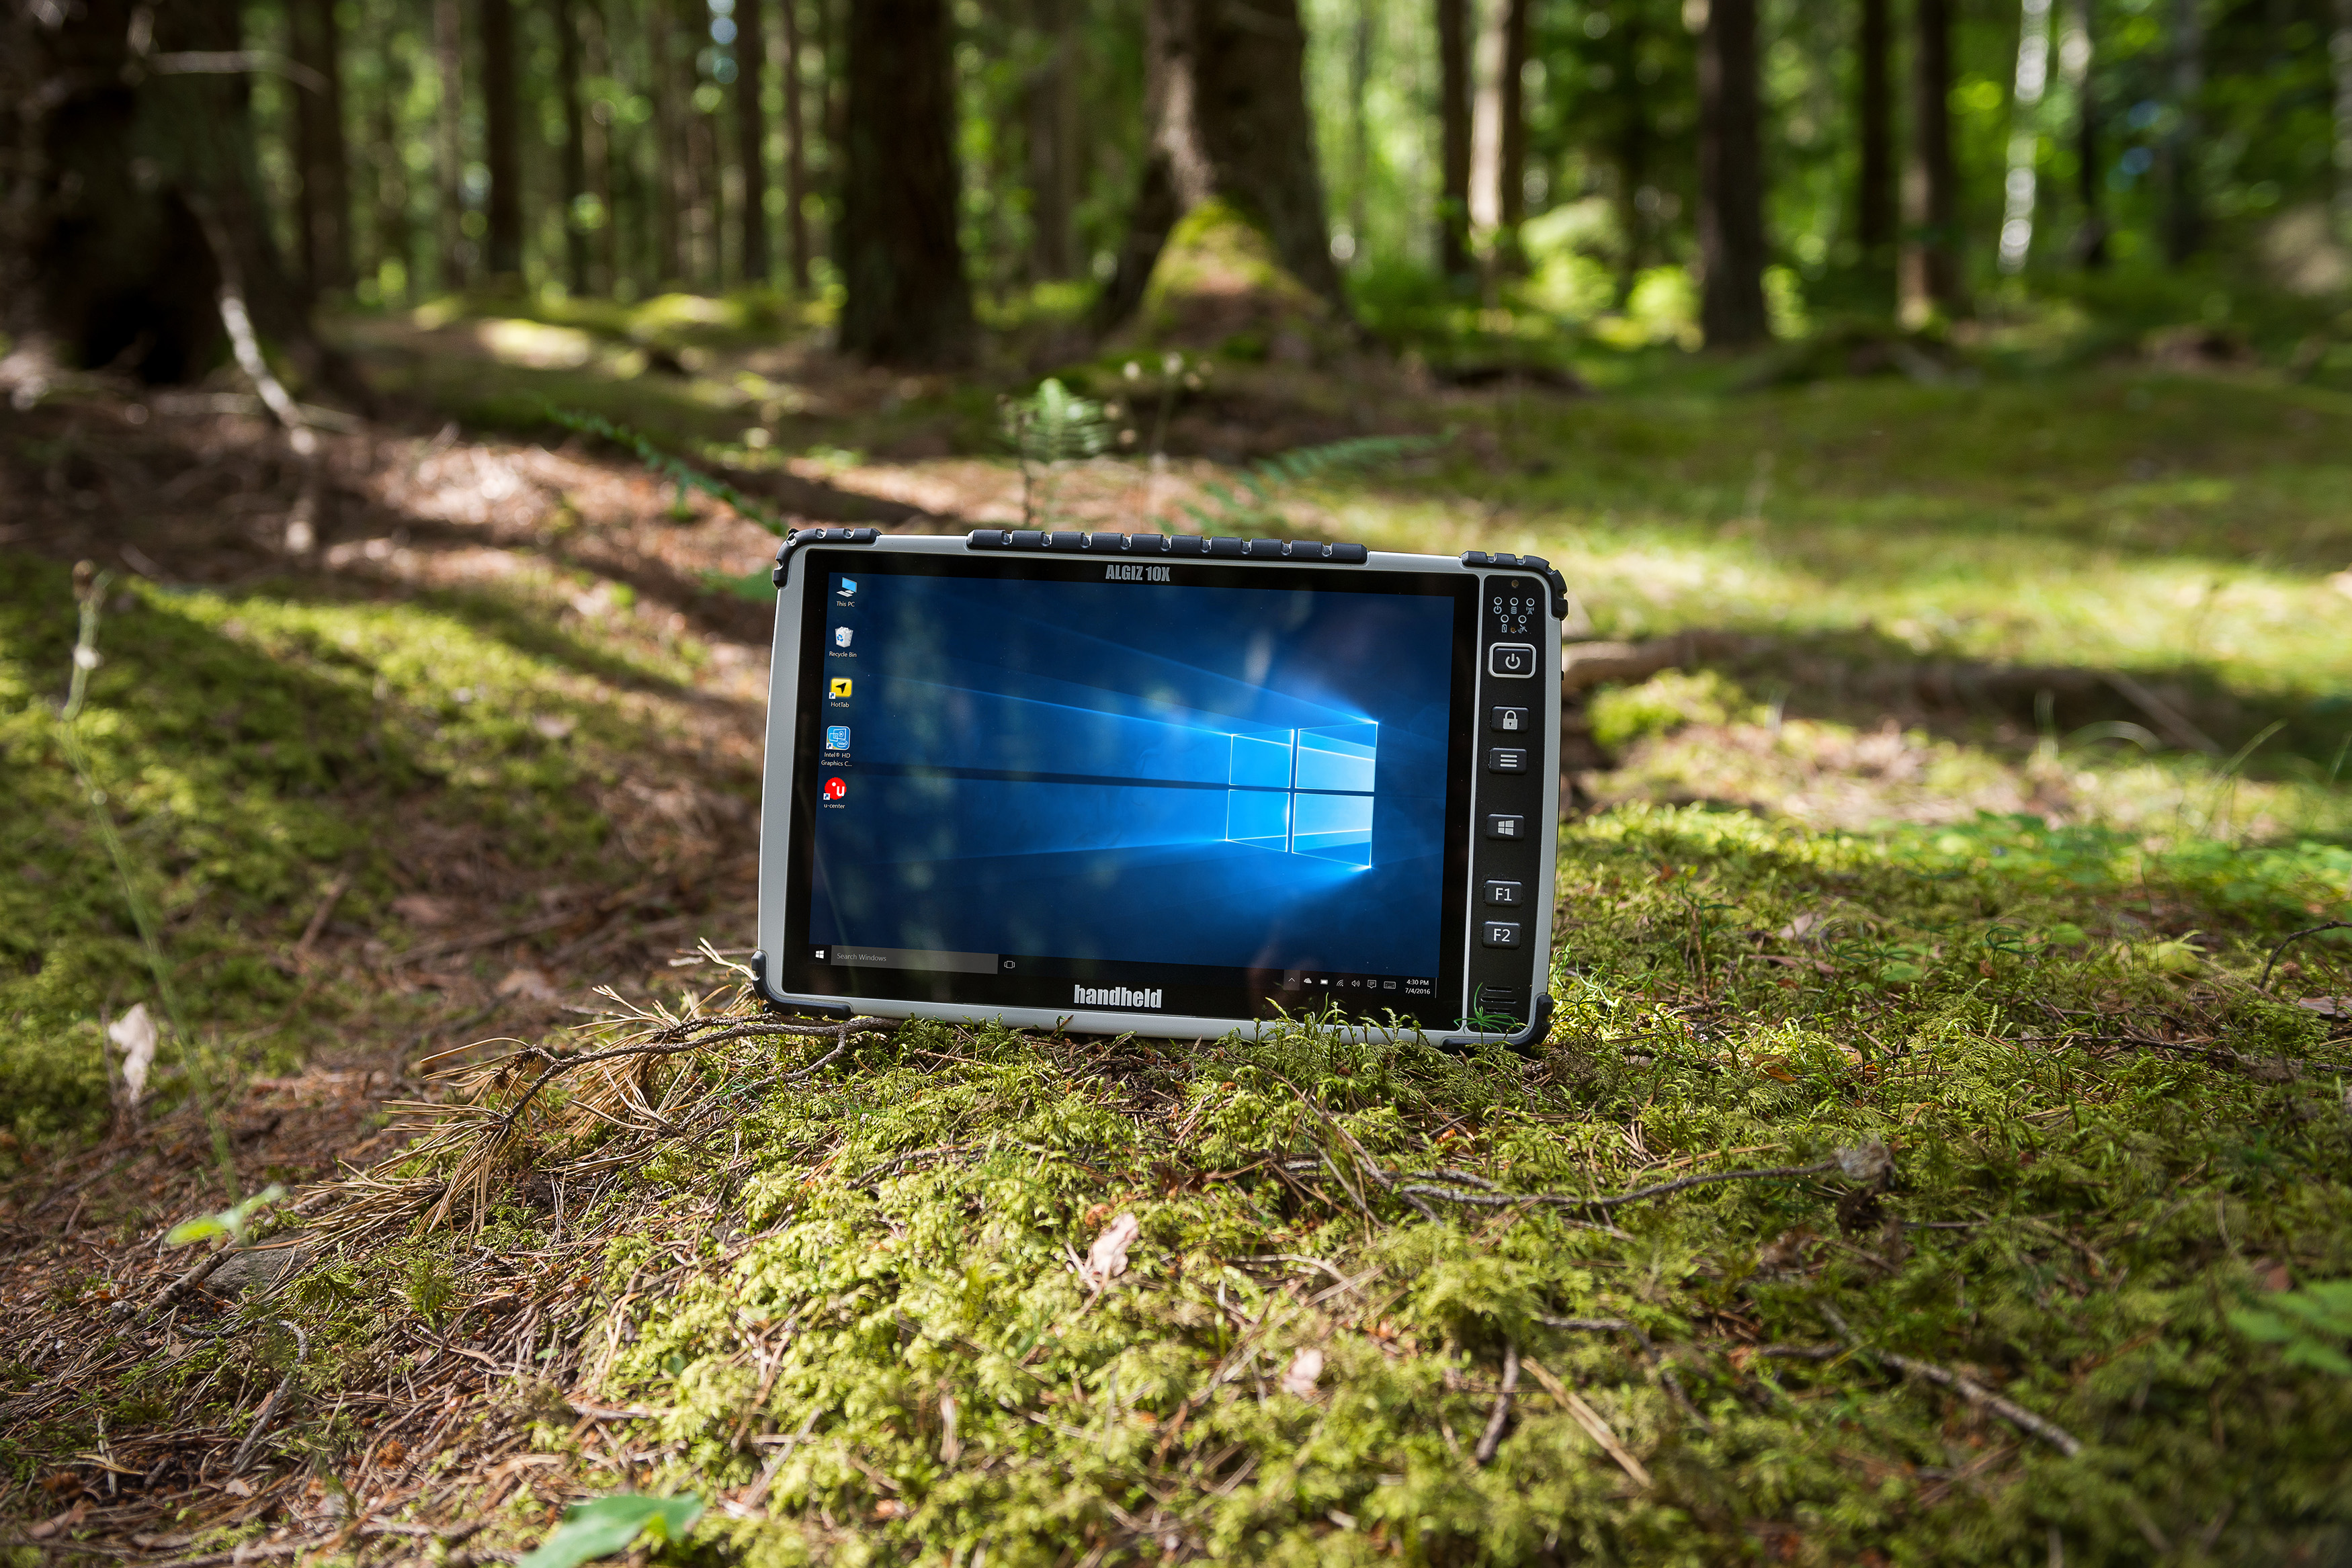 Algiz-10X-rugged-tablet-PCAP-screen.jpg